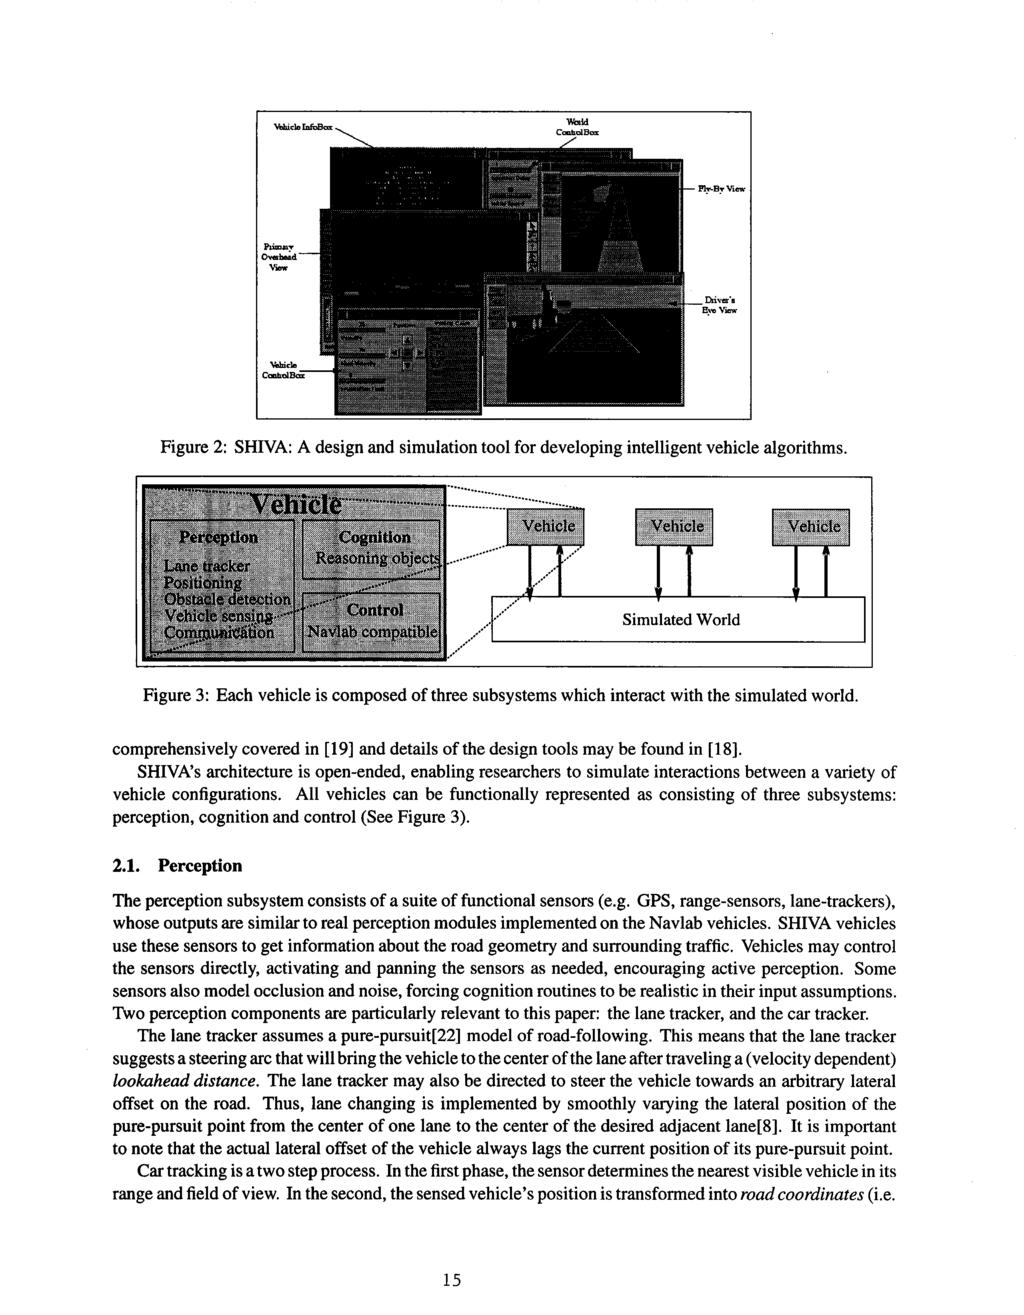 Figure 2: SHIVA: A design and simulation tool for developing intelligent vehicle algorithms.